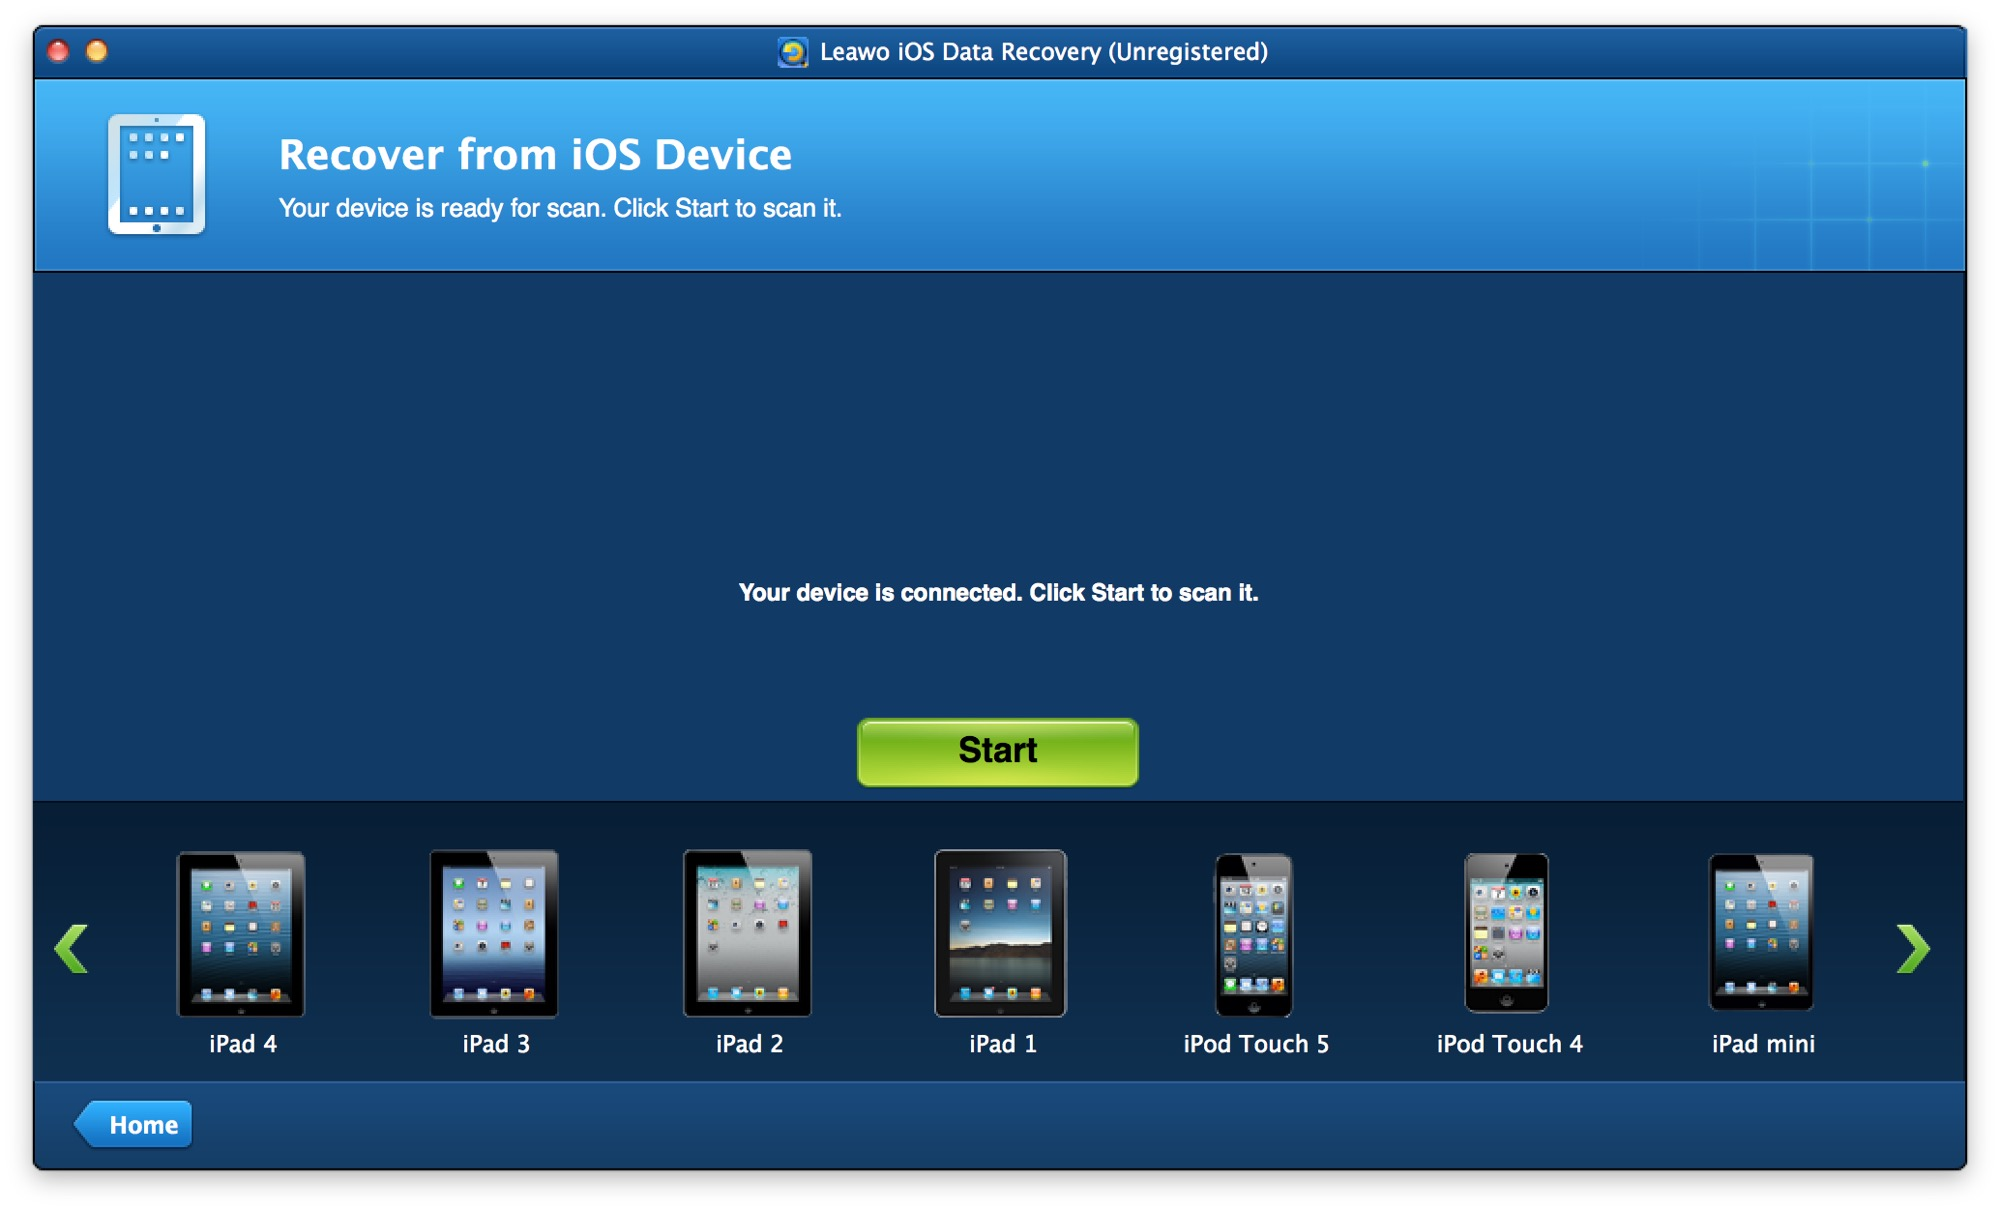 Analizamos la app Leawo iOS Data Recovery